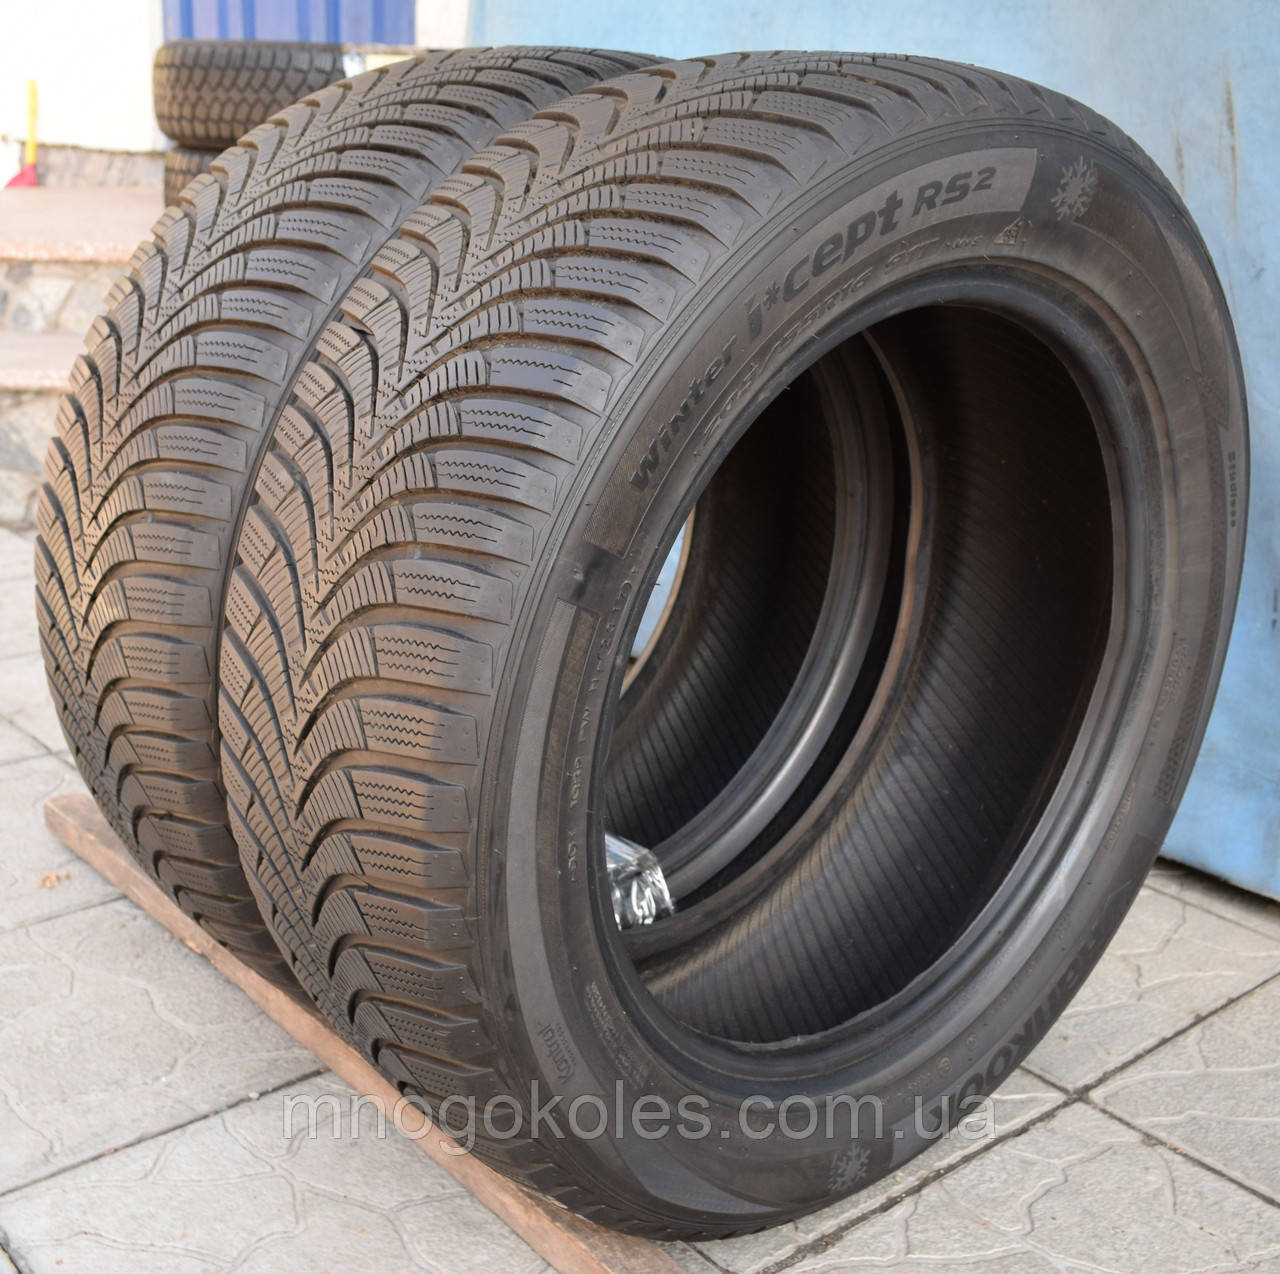 Шины б/у 205/55 R16 Hankook Winter i*Cept RS2, ЗИМА, 6 мм, 2017 г., пара